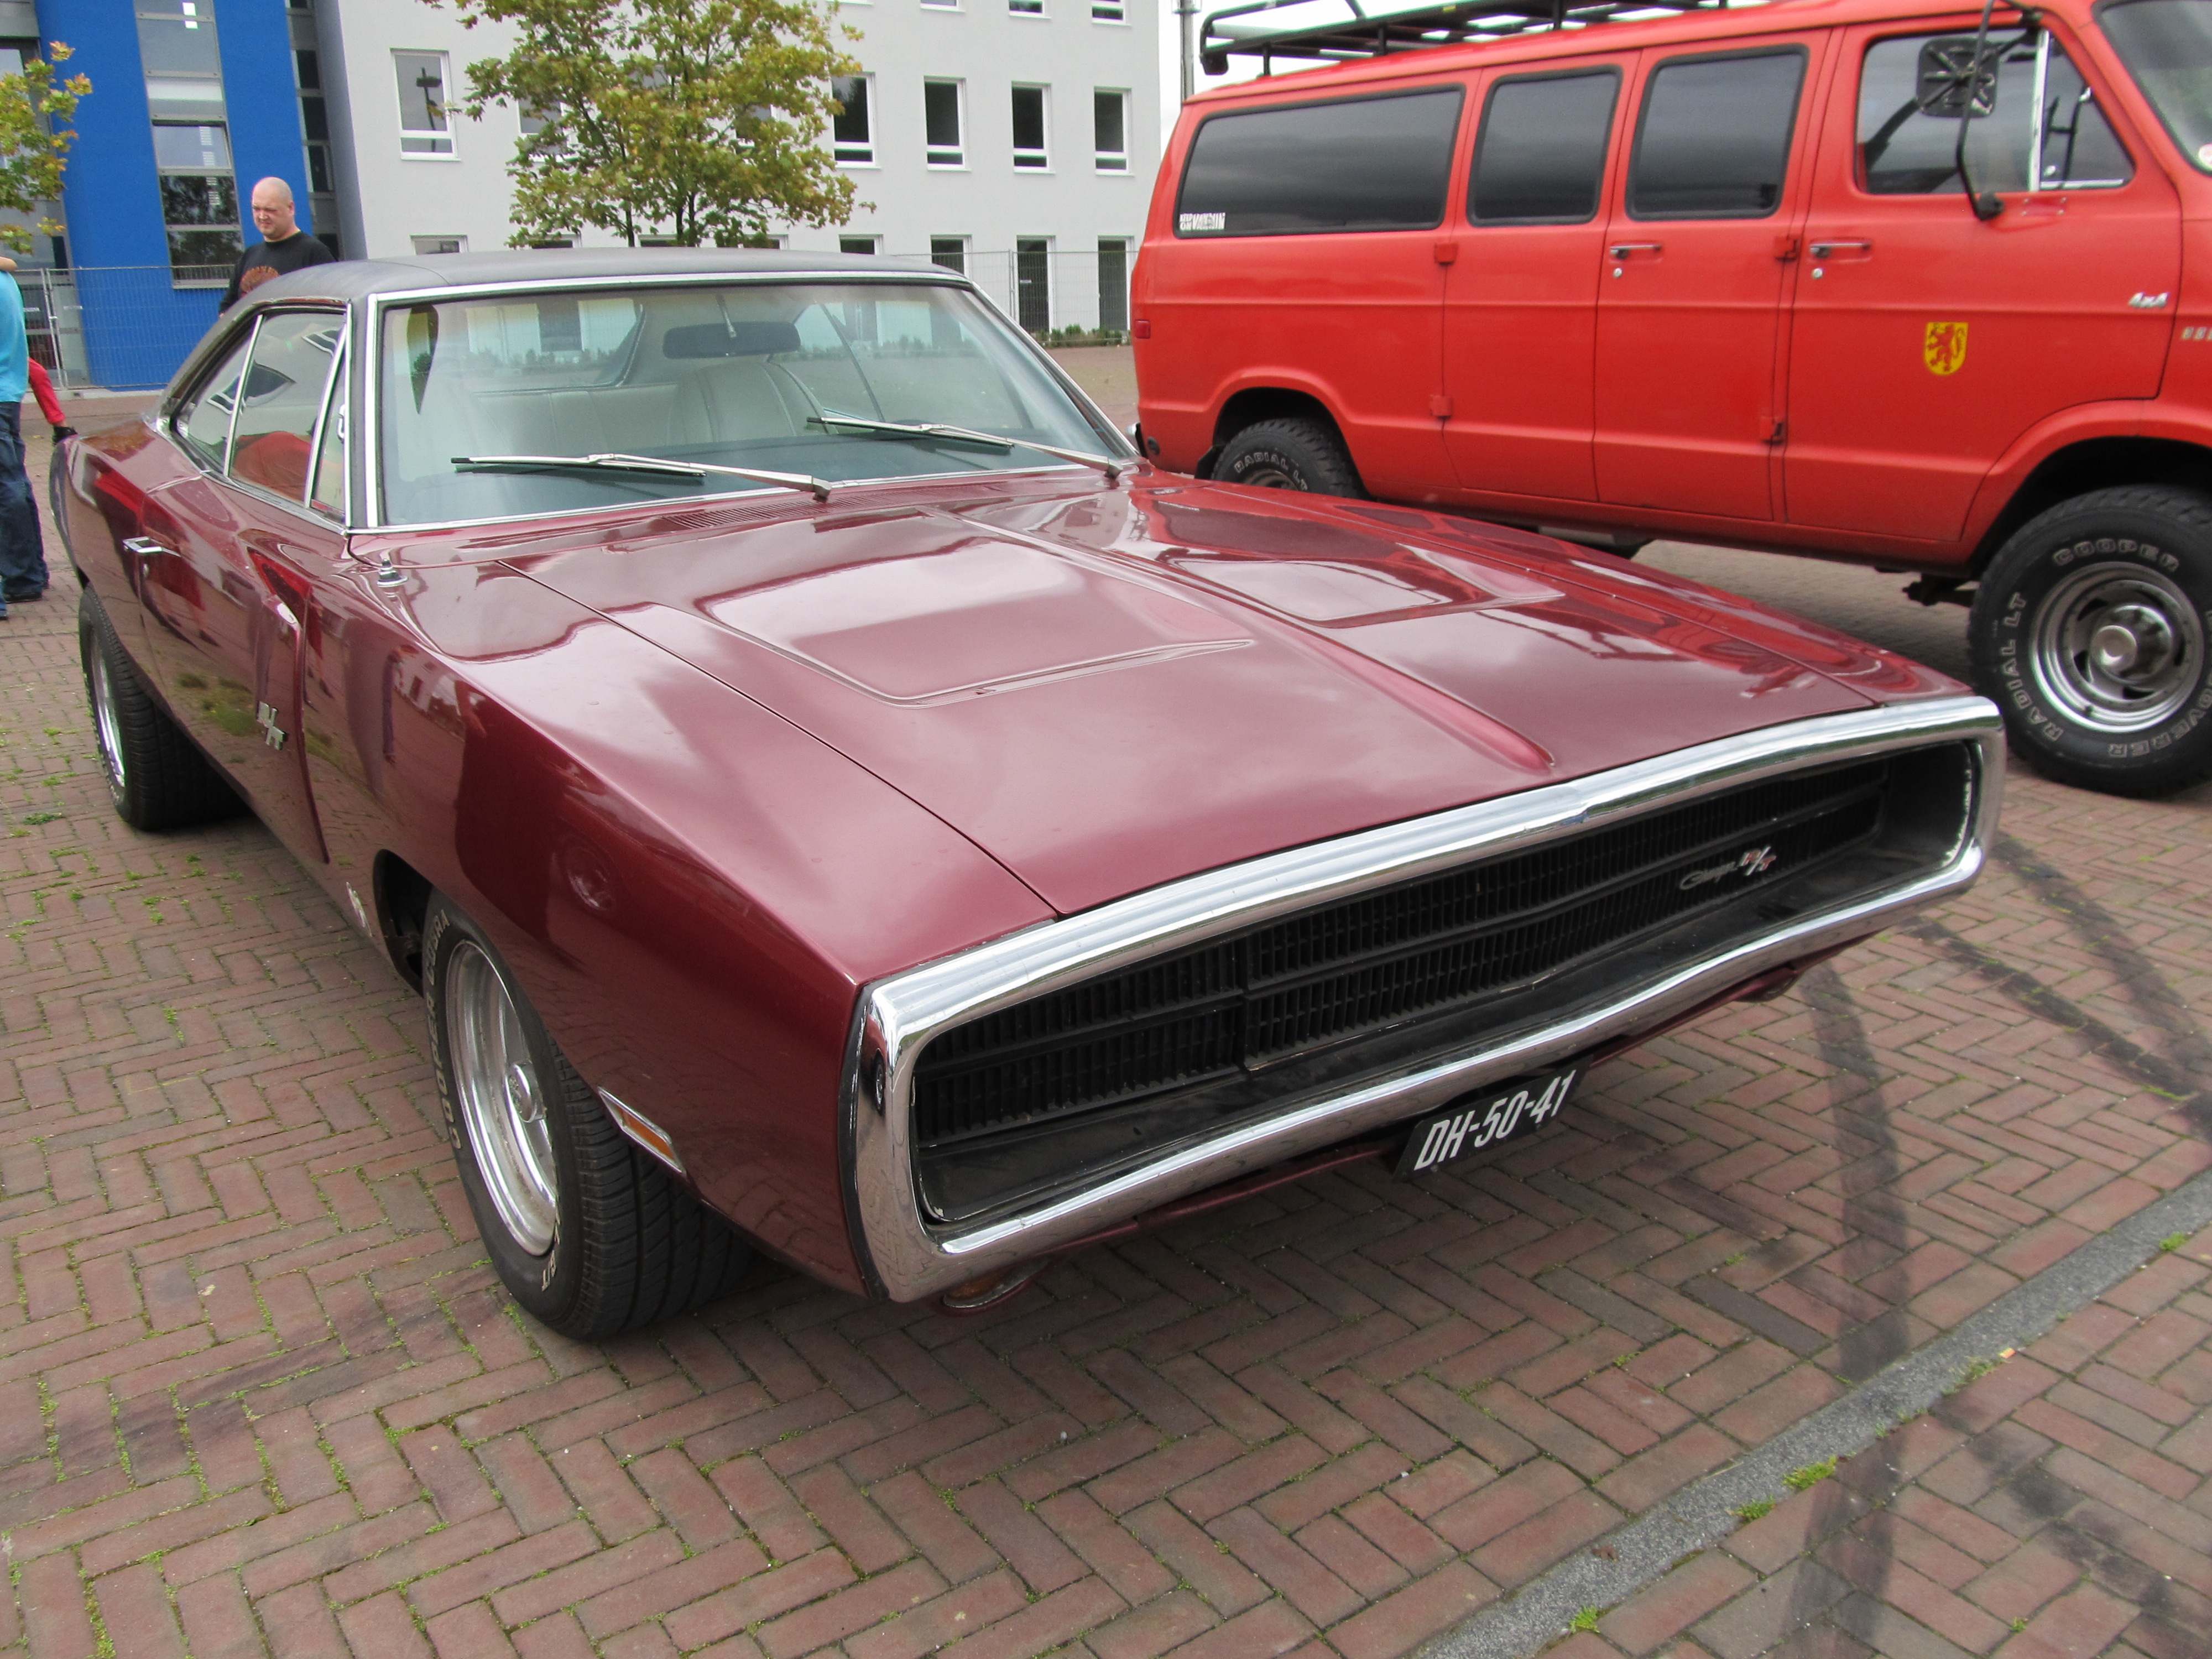 Dodge Charger RT 1970 | Flickr - Photo Sharing!